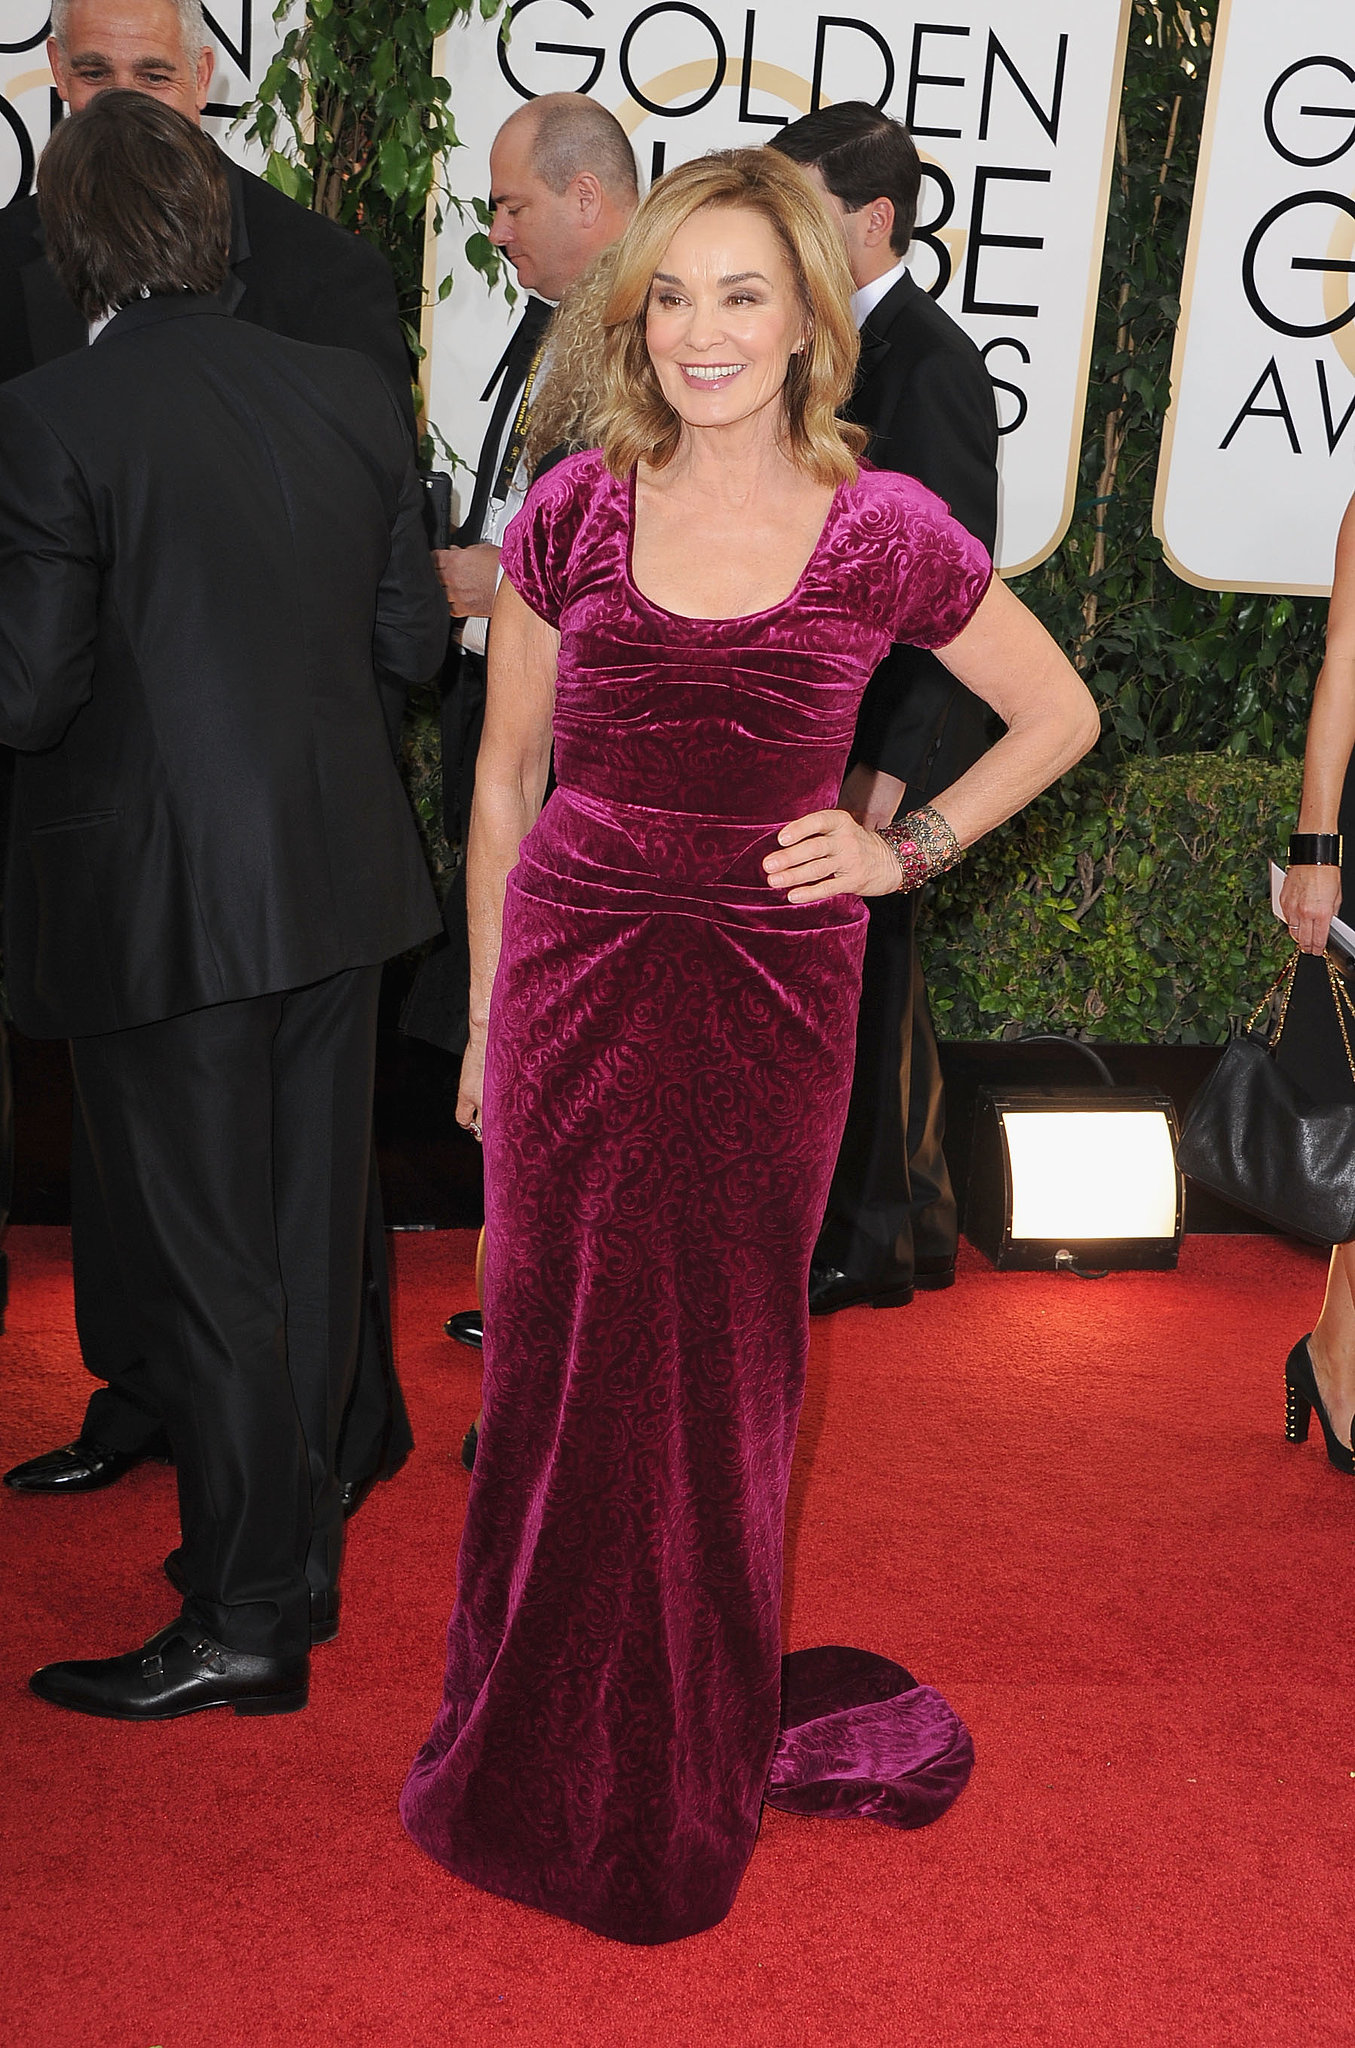 Jessica Lange arrived at the Golden Globes.